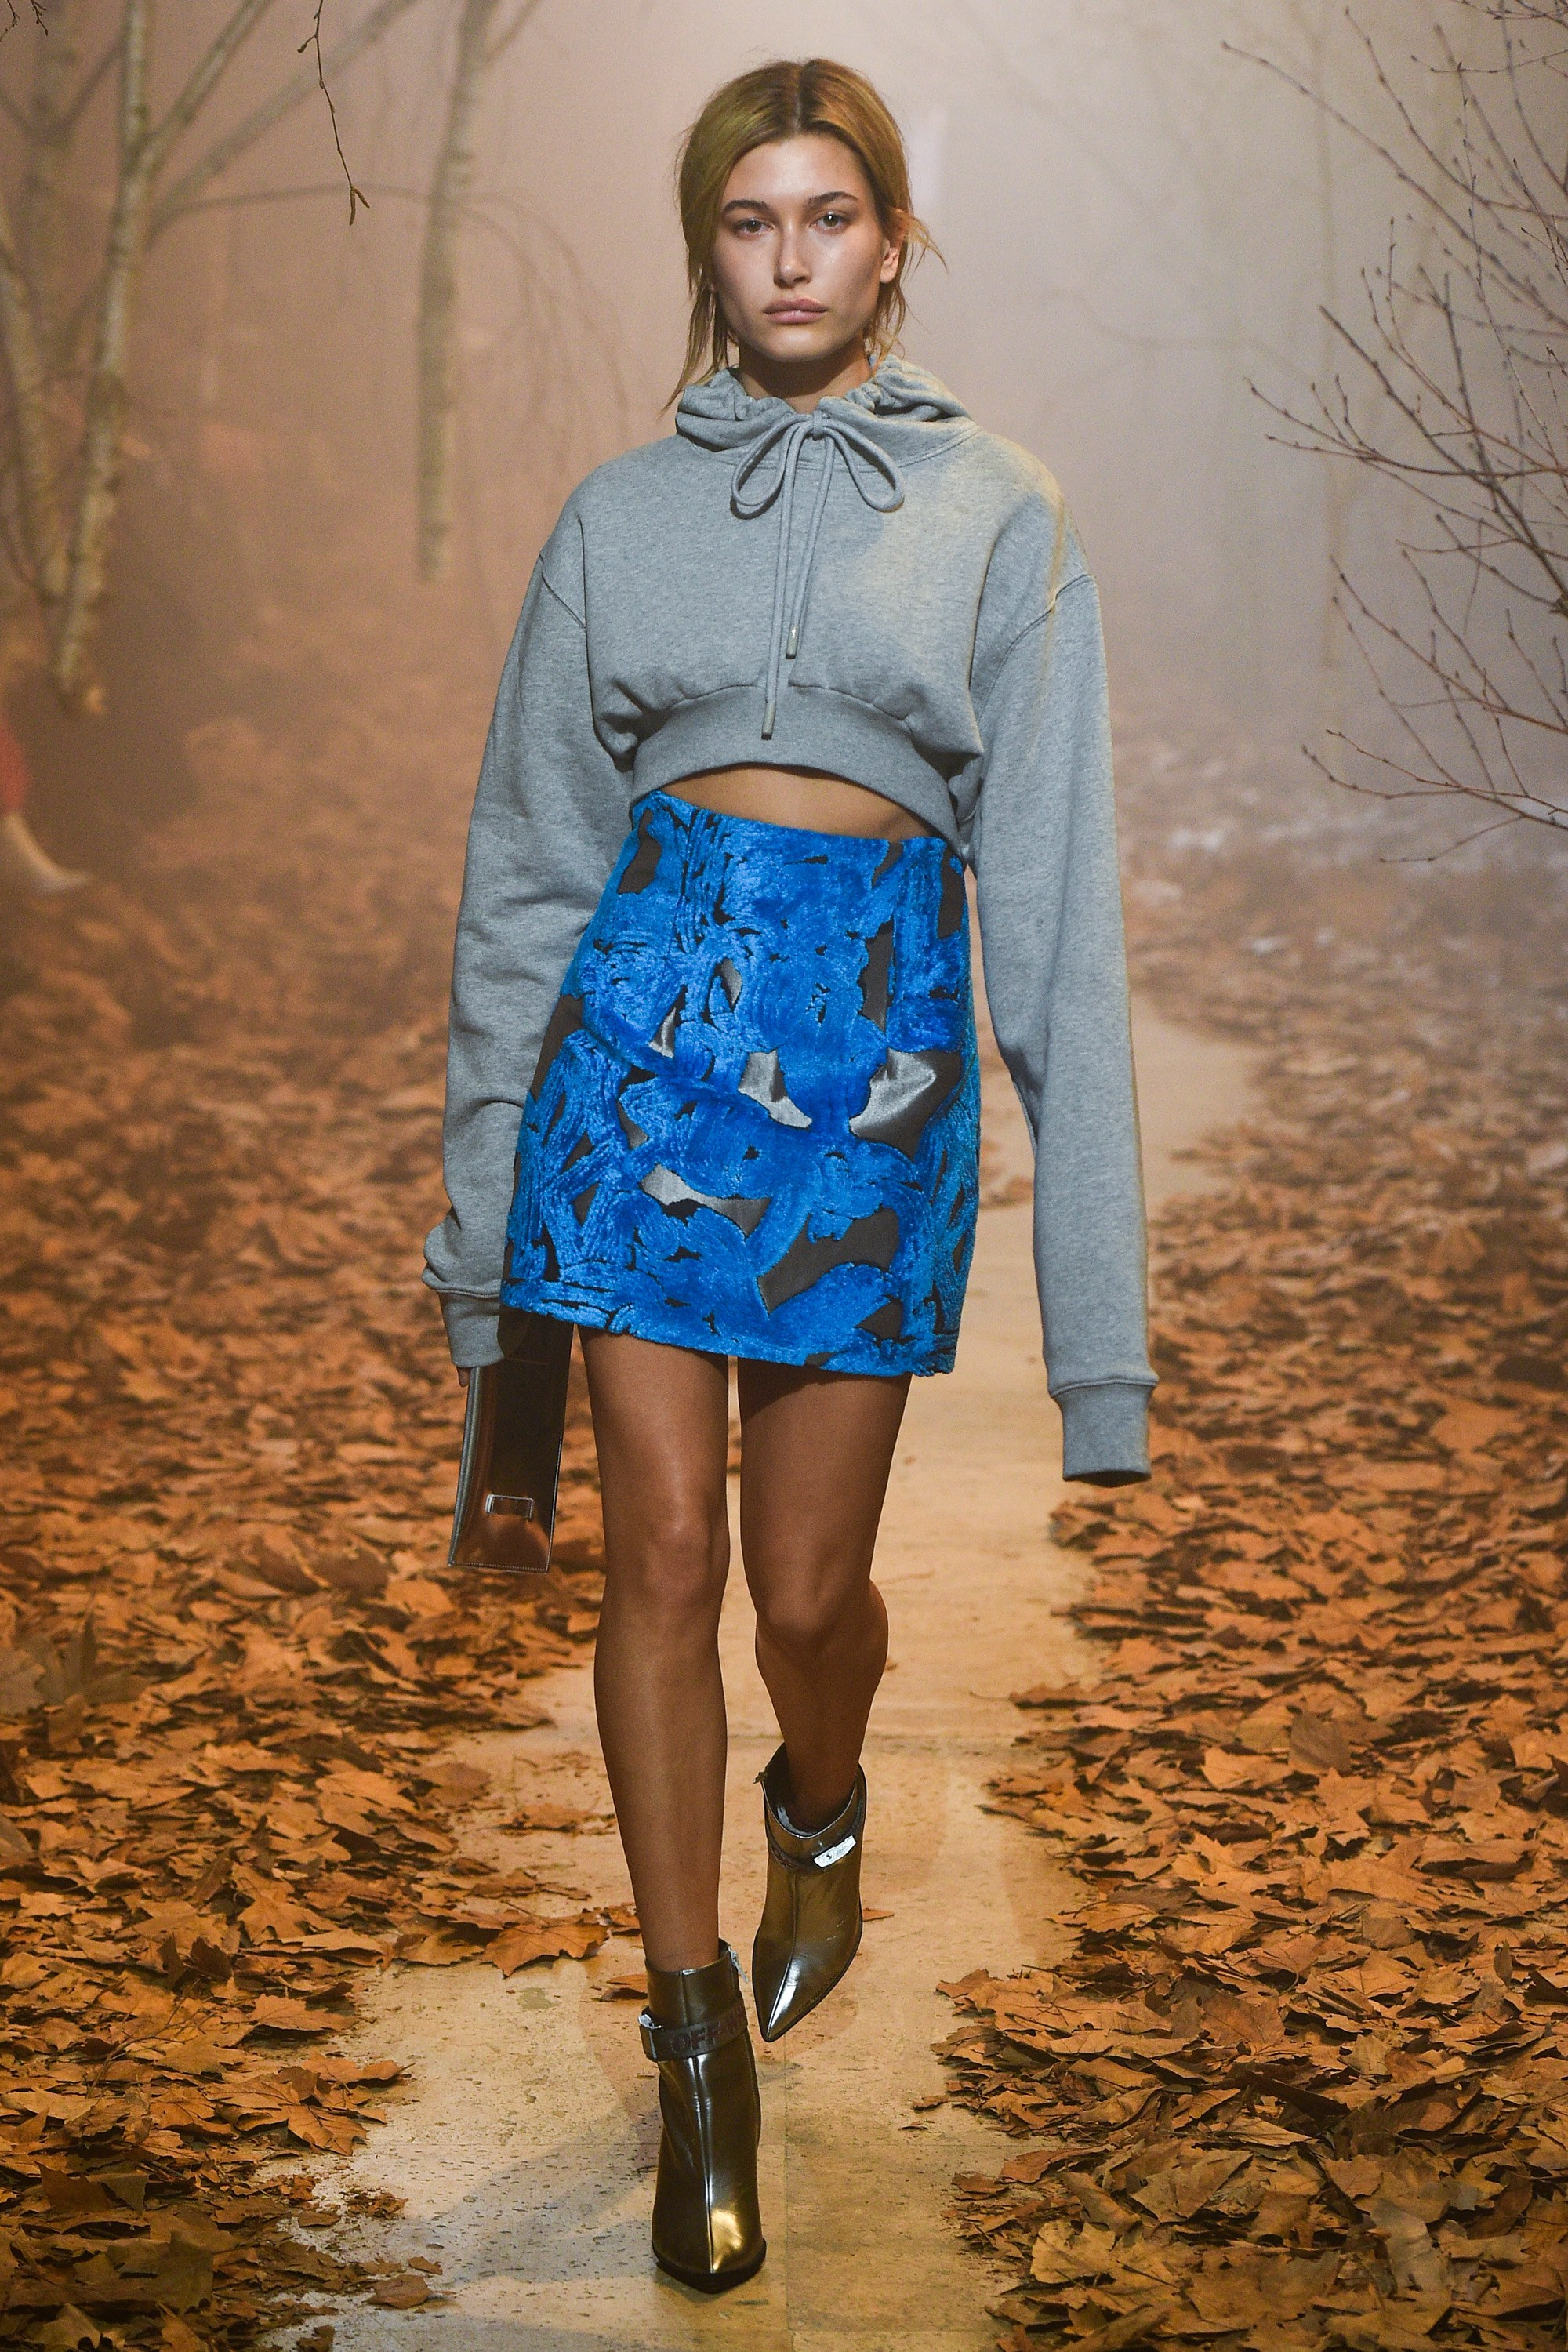 Again, the cropped sweatshirt and skirt look.